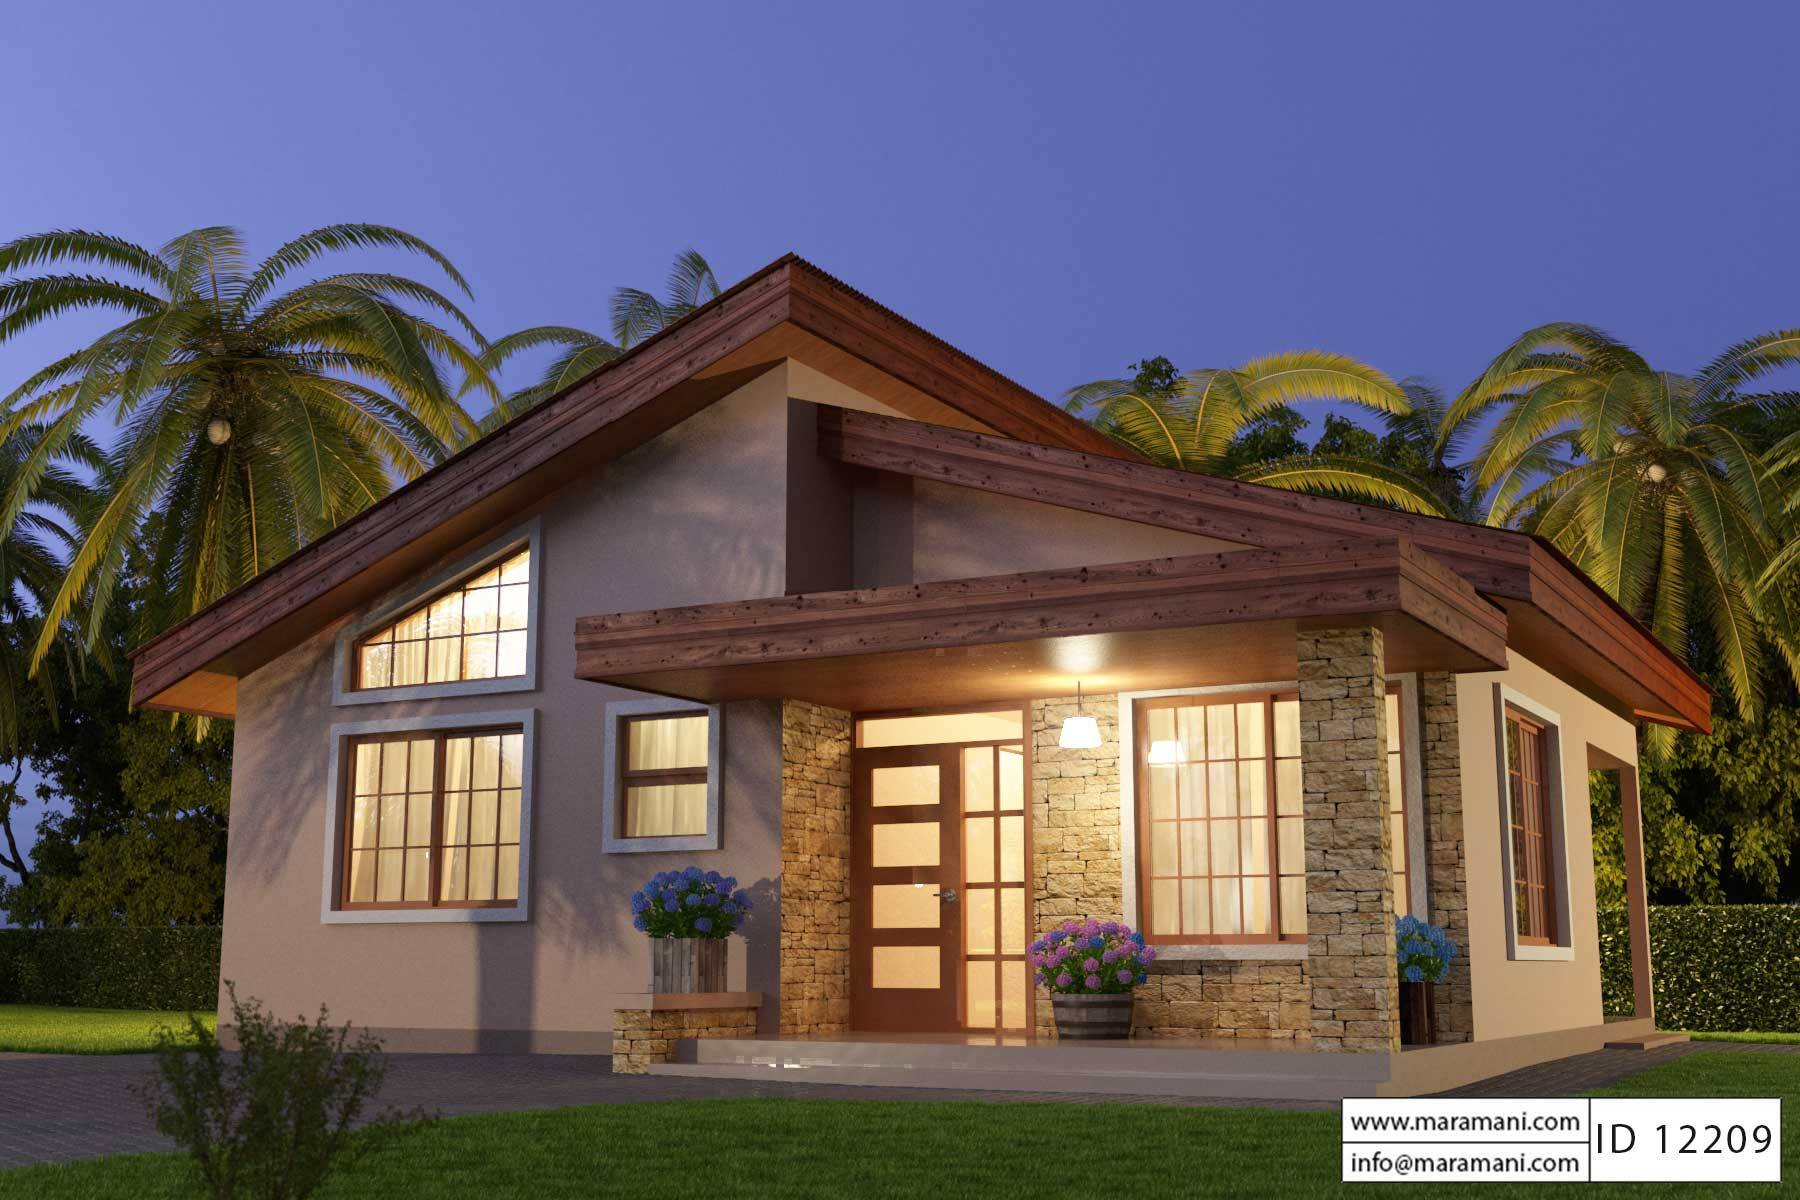 unique small house plan id12209 floor plans by maramani rh maramani com two bedroom house plans two bedroom house for rent